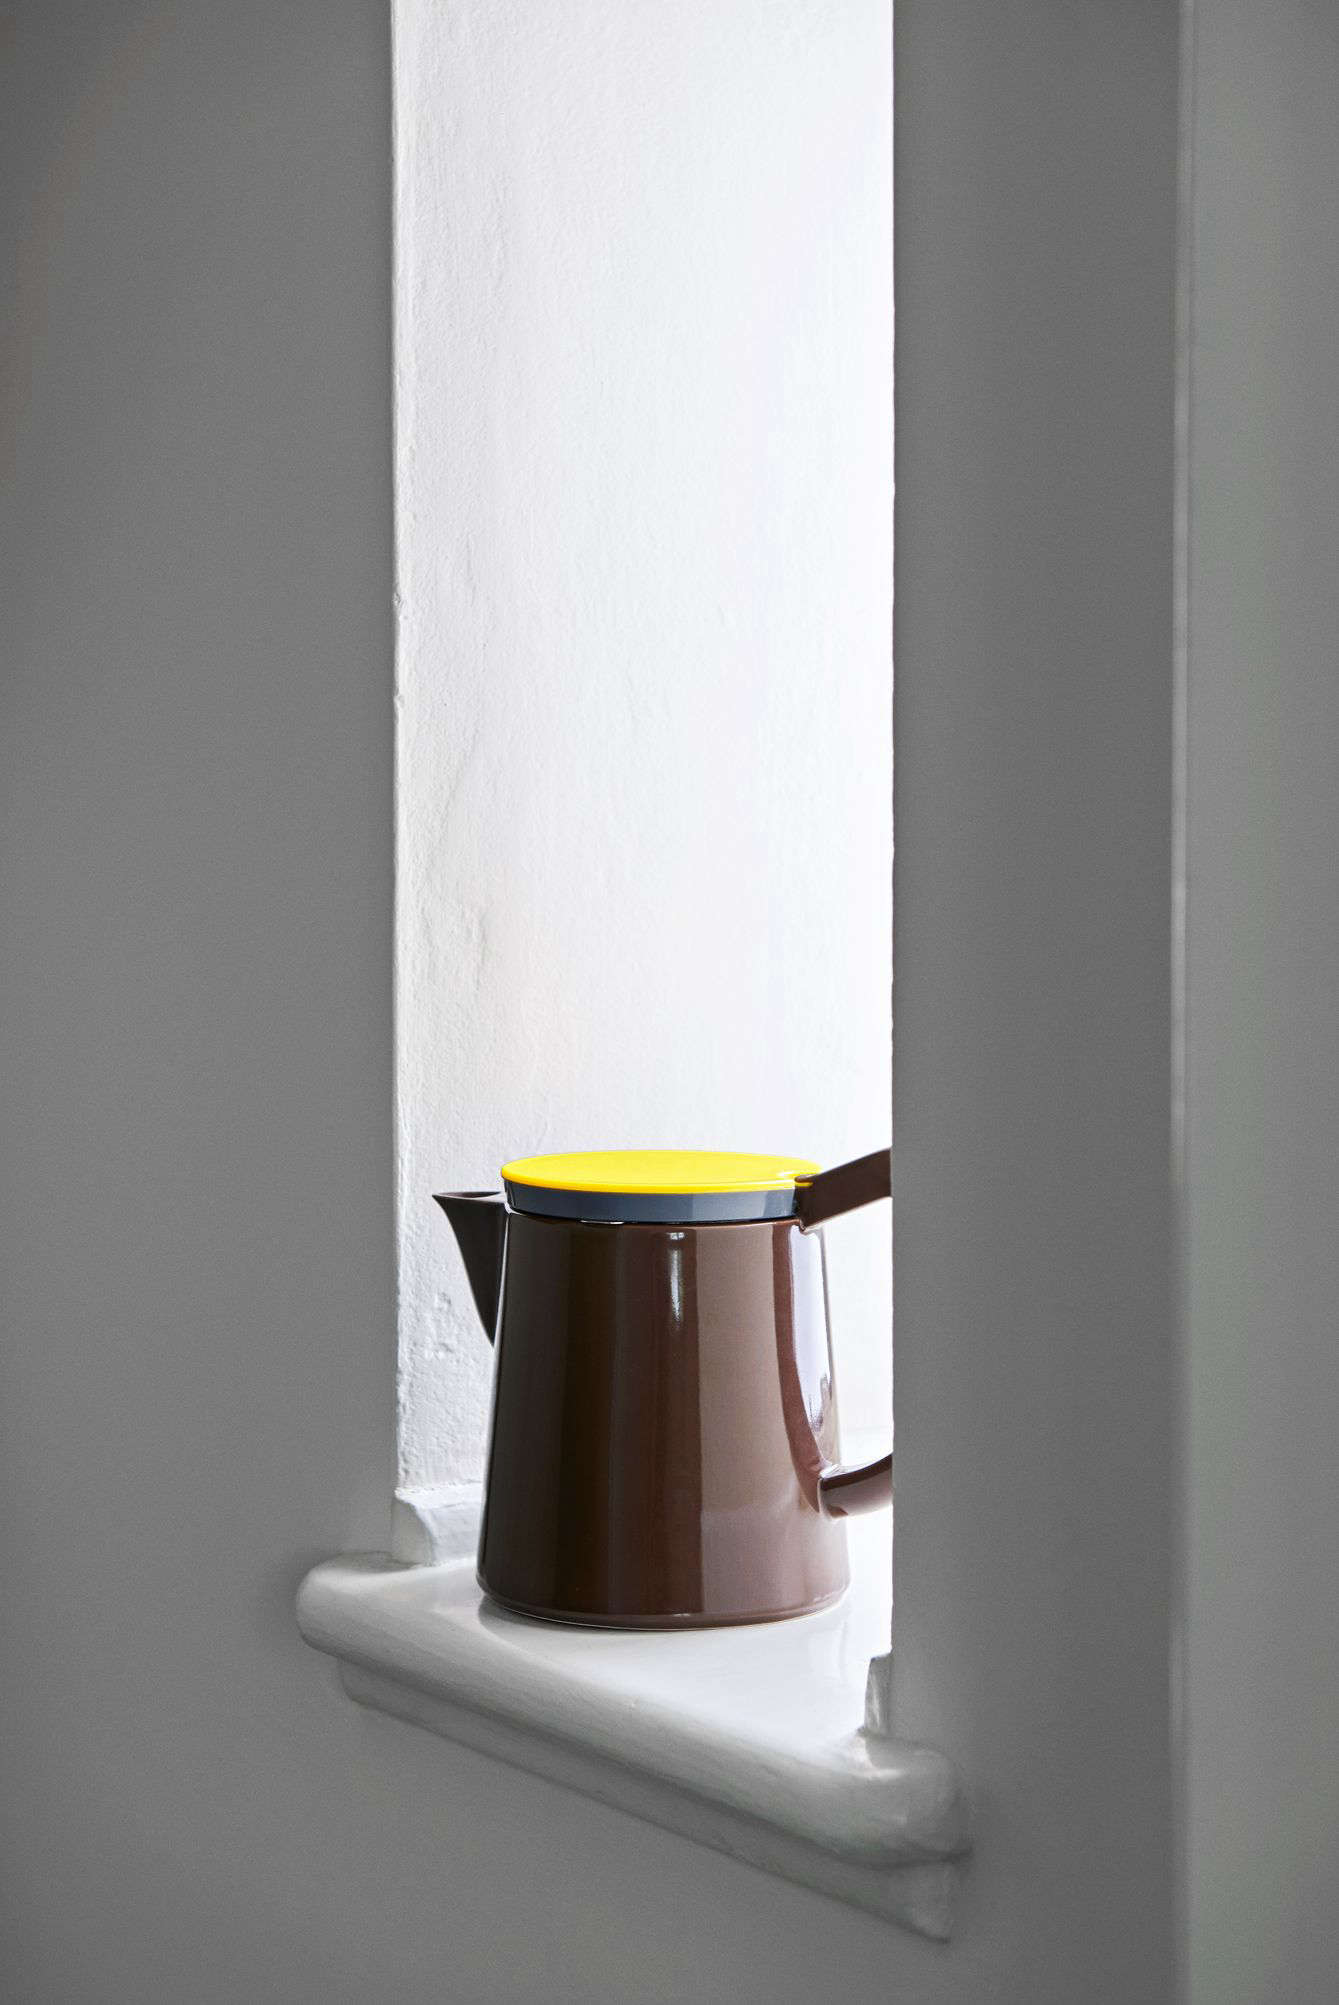 The Hay Teapot In Brown Porcelain Was Designed By George Sowden For Hay;  $69u2013